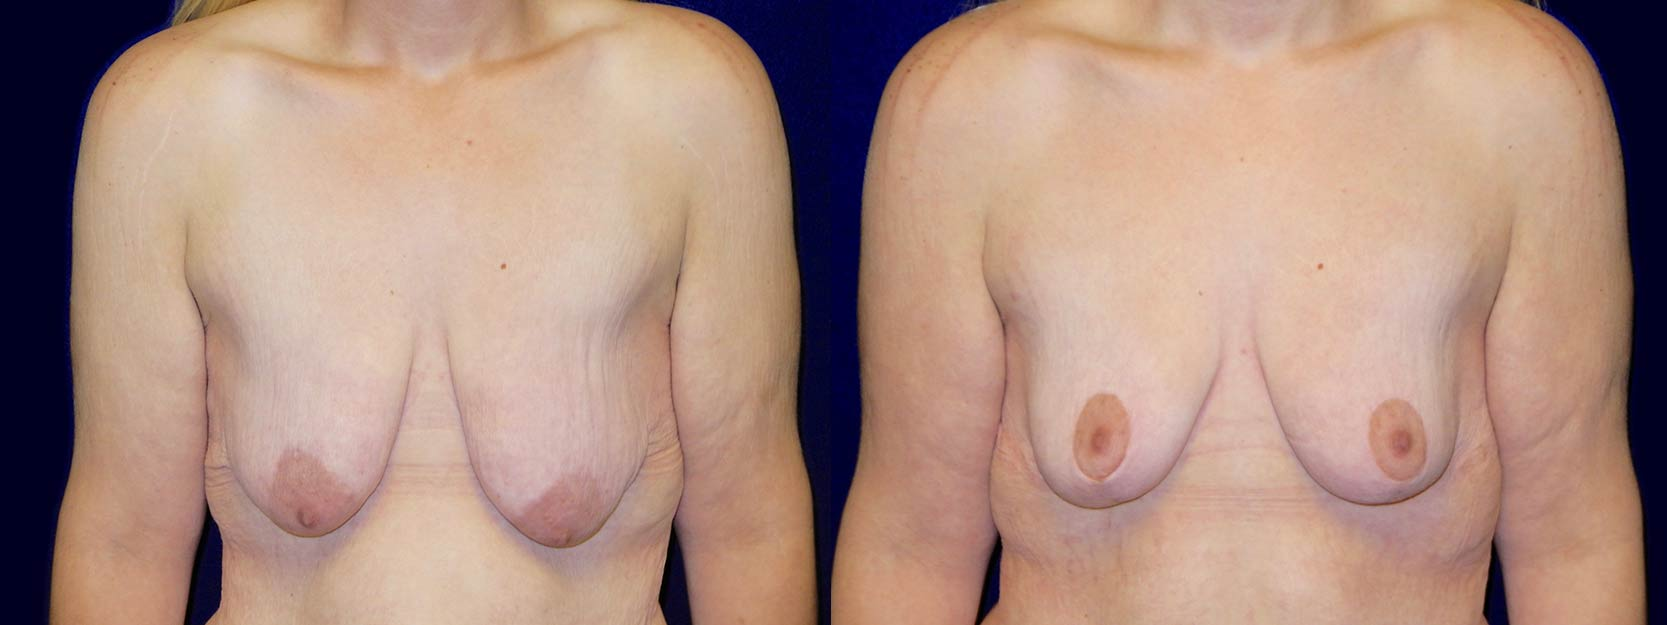 Frontal View - Breast Lift After Weight Loss